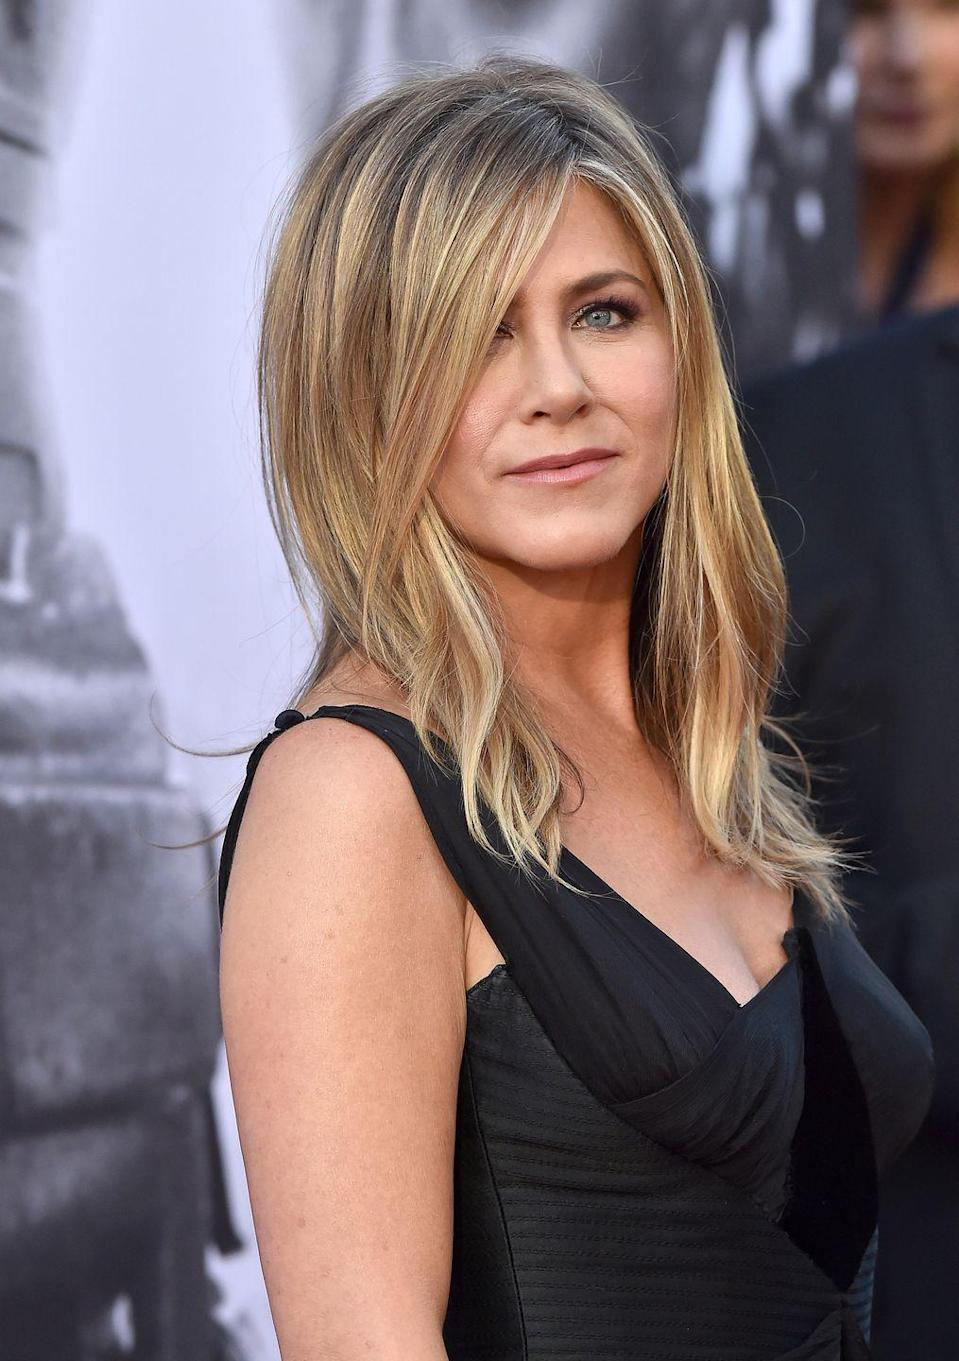 <p>Jen told People that she's big into taking a spin-yoga class several times a week, which is 25 to 30 minutes of spinning and then 30 to 40 minutes of yoga.</p>